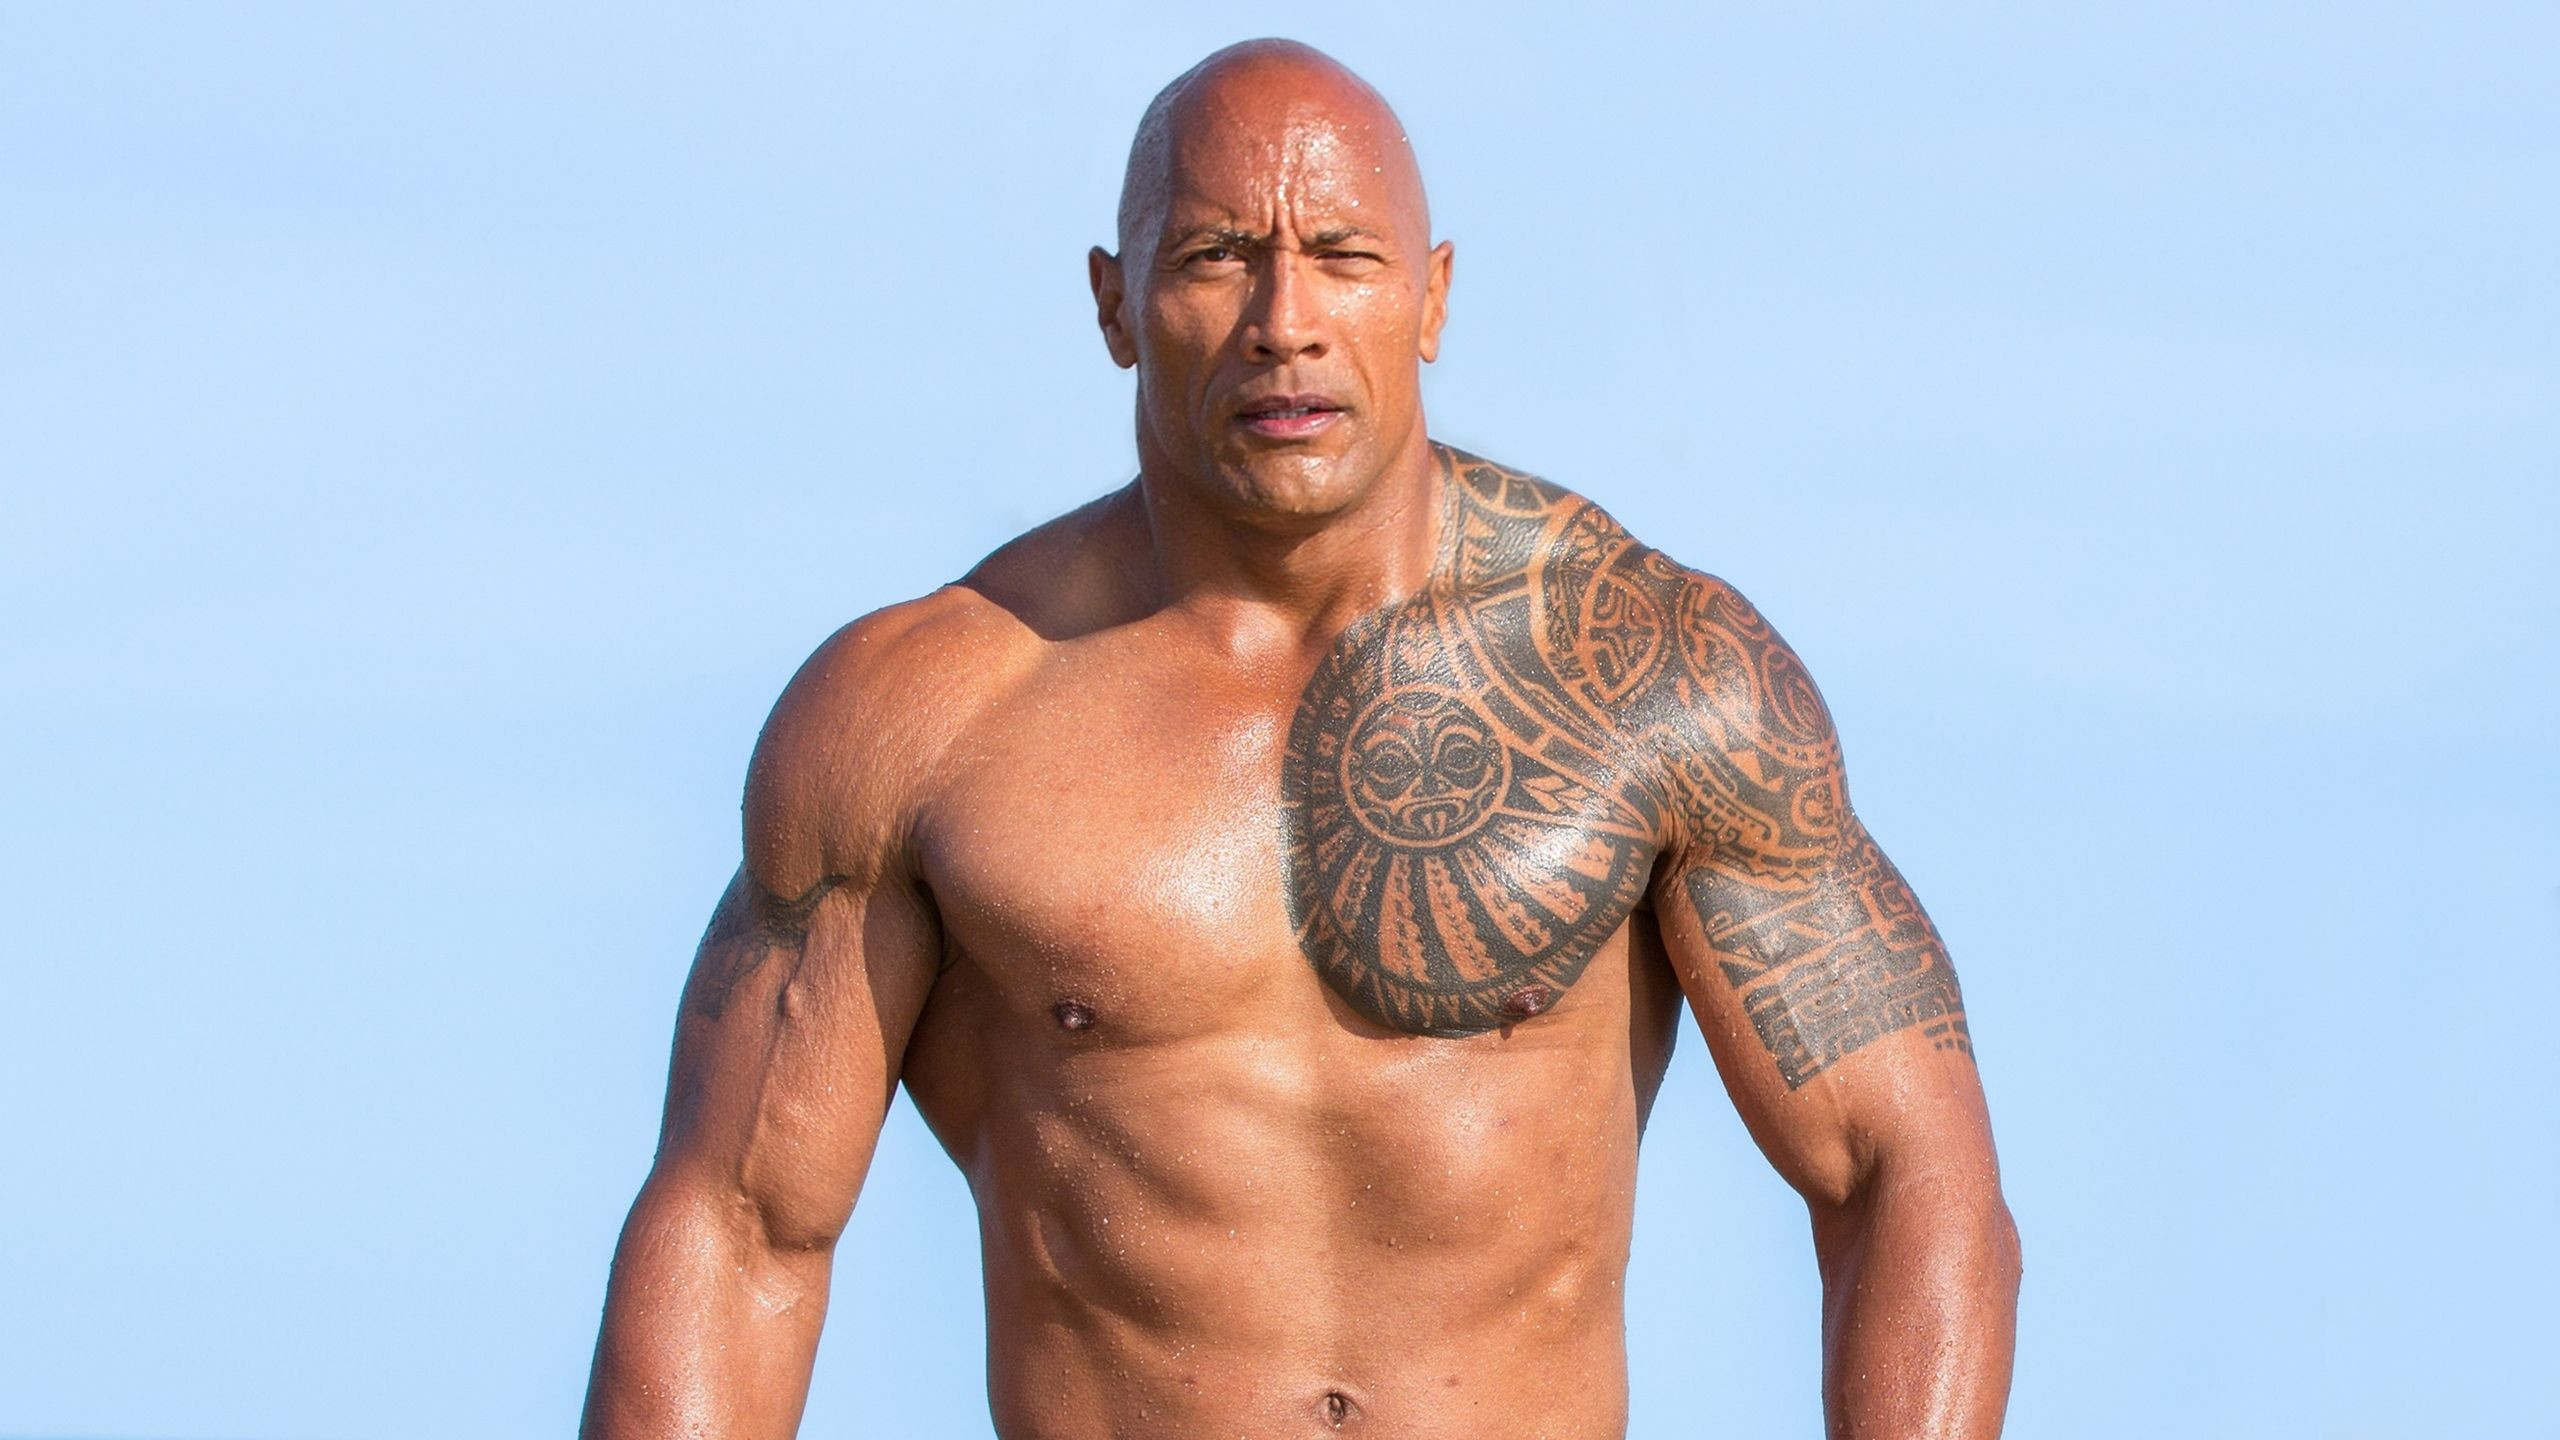 Dwayne Johnson Hd Wallpapers Posted By John Sellers